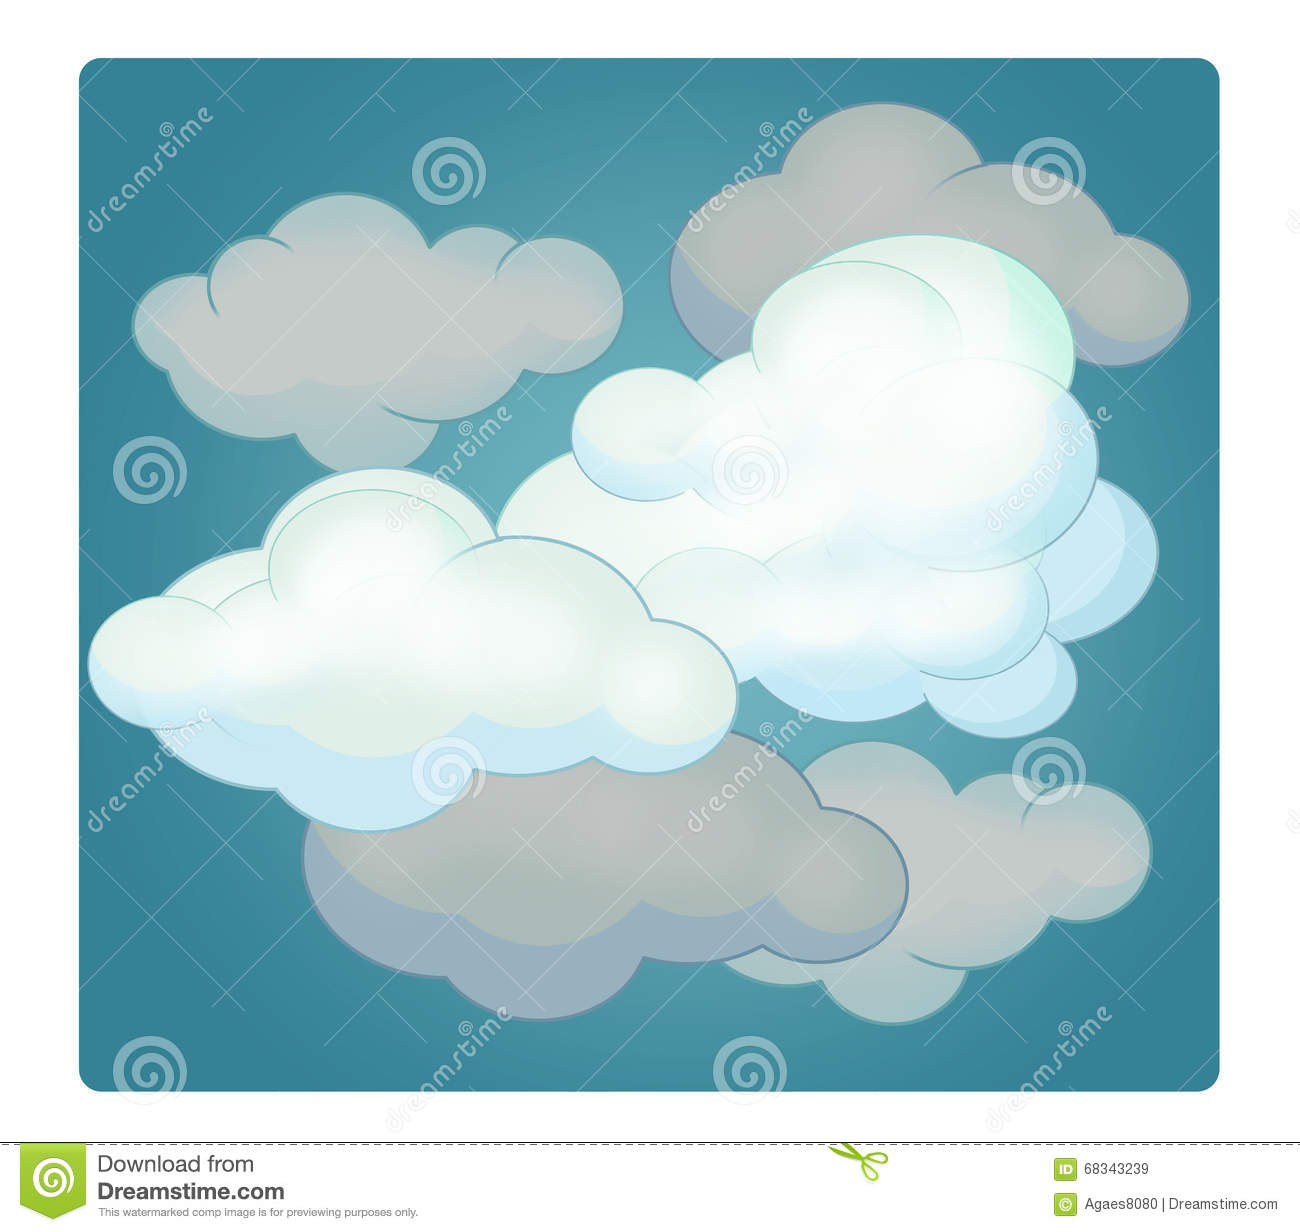 cloudy day cartoon wwwpixsharkcom images galleries